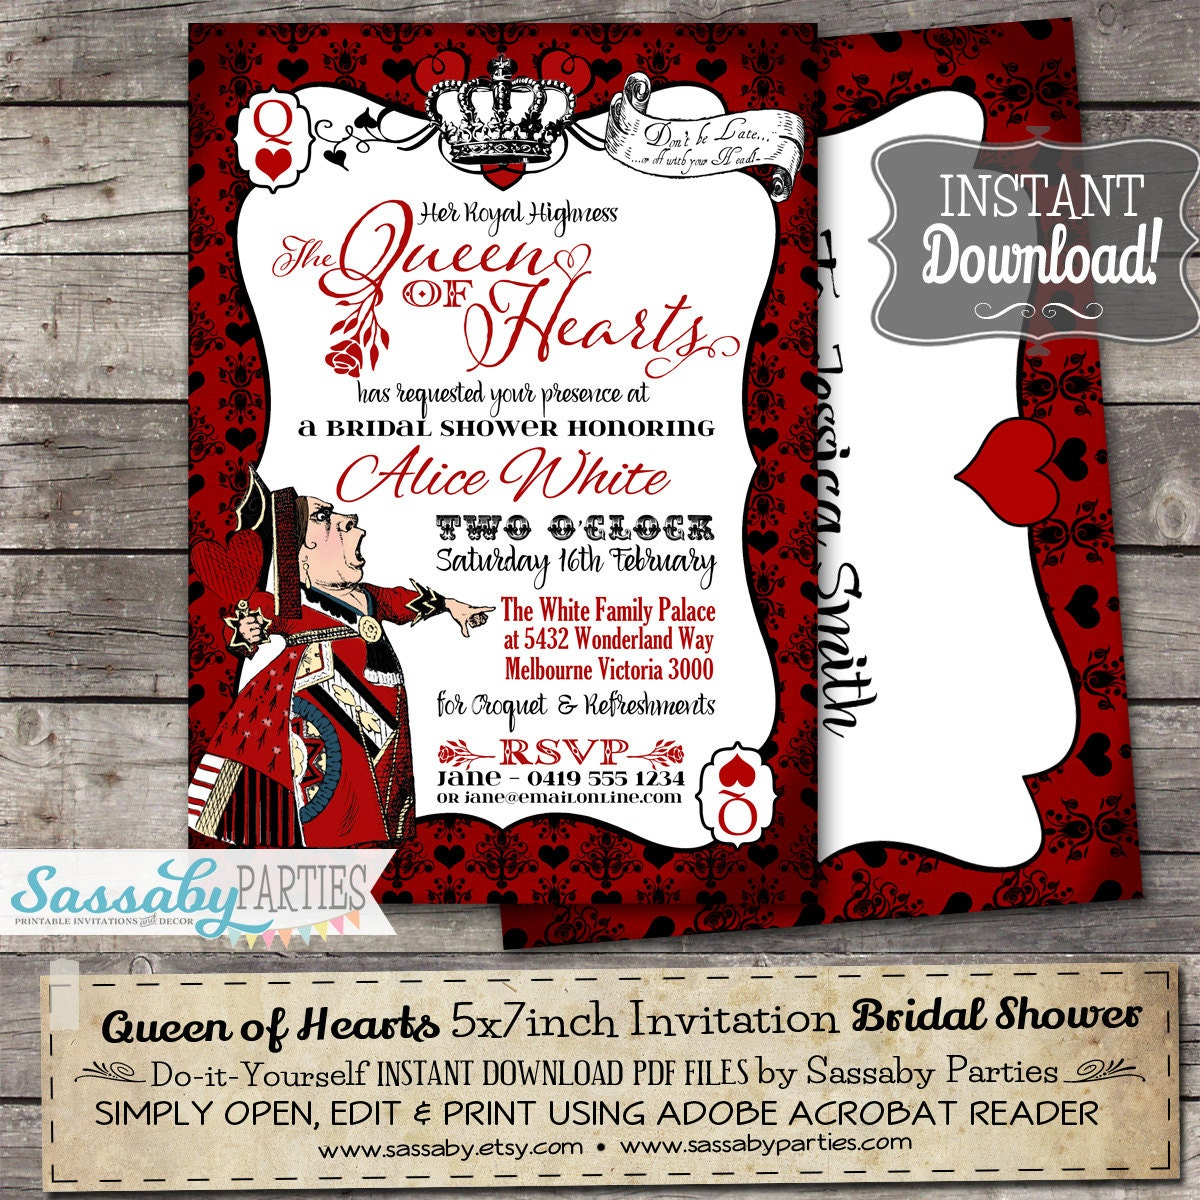 Queen of Hearts Invitation INSTANT DOWNLOAD Partially